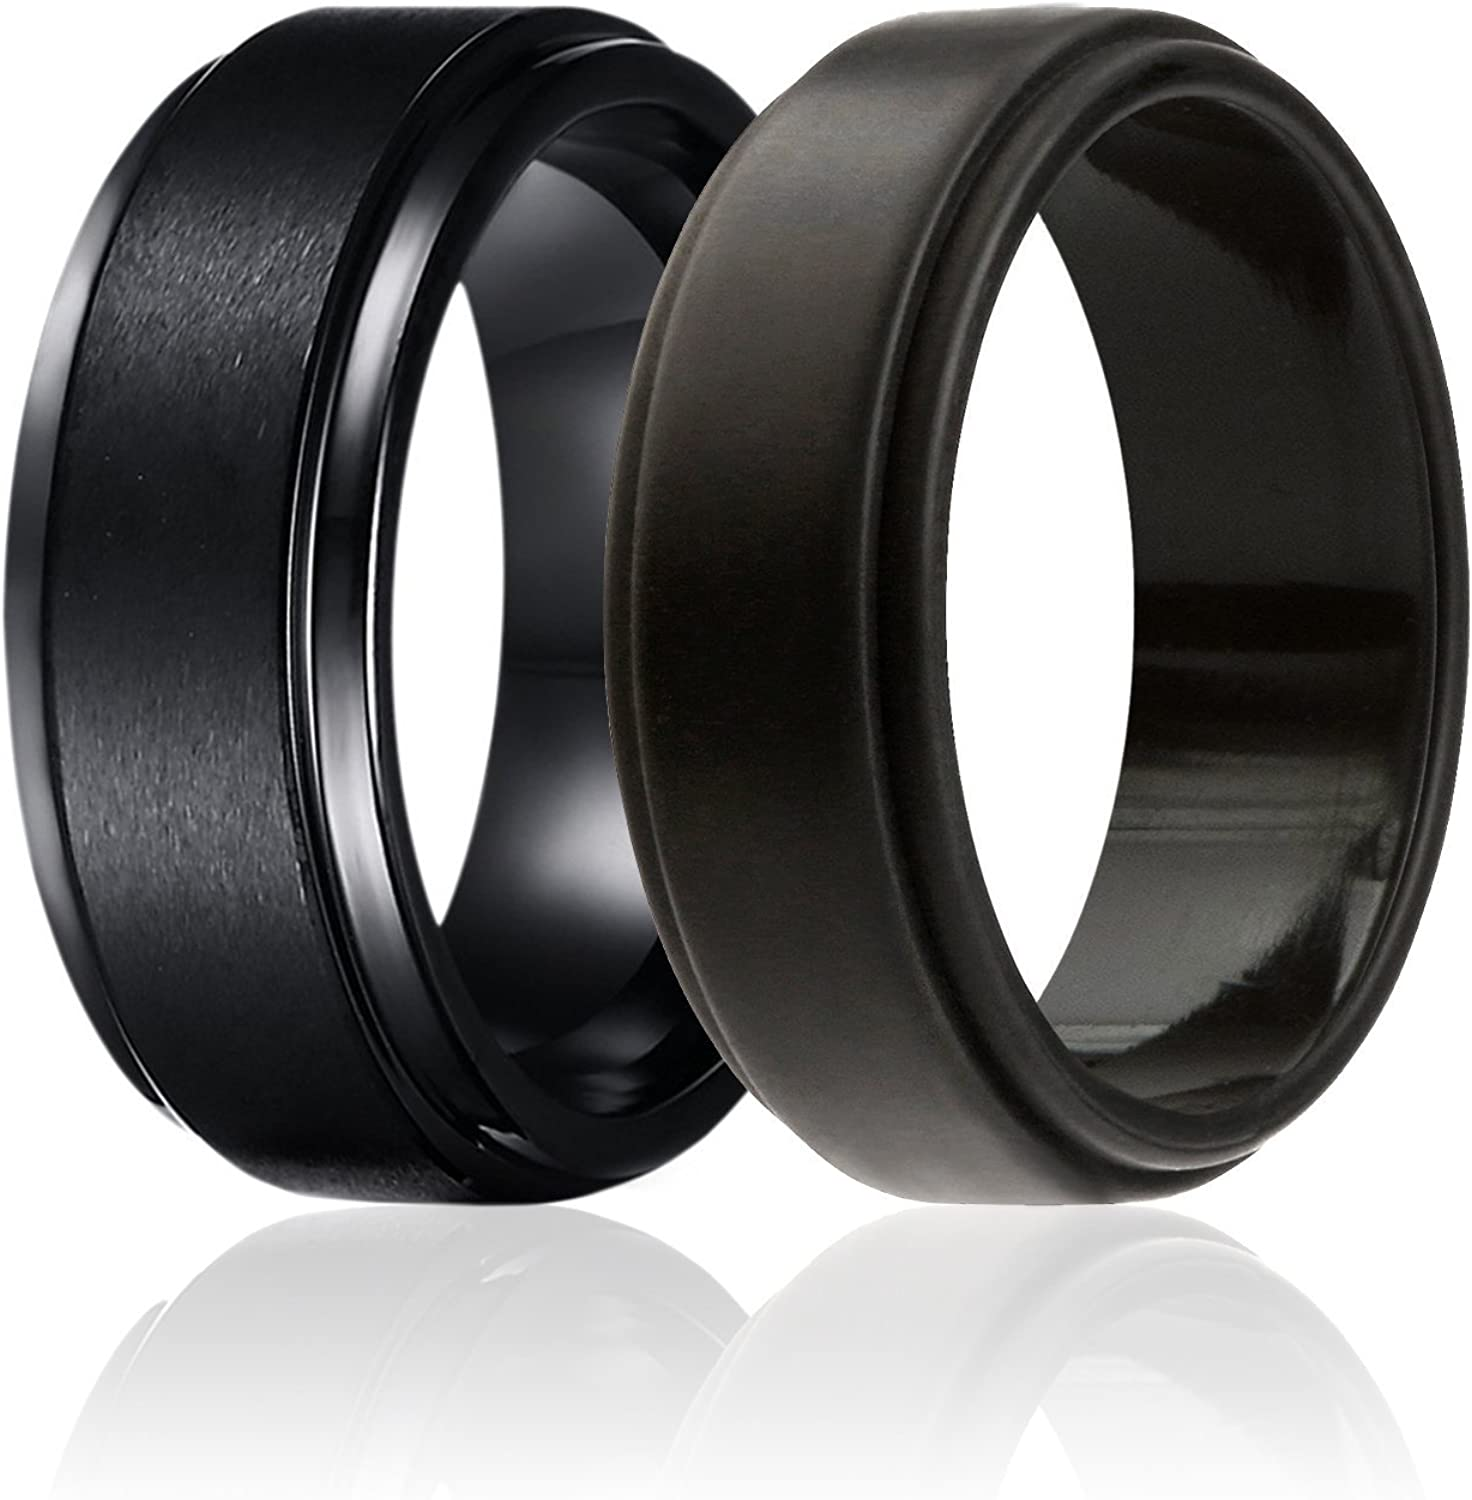 SOLEED Twins - Set of 2-1 Tungsten Wedding Band and 1 Silicone Rubber Wedding Ring for Men, Classic Style